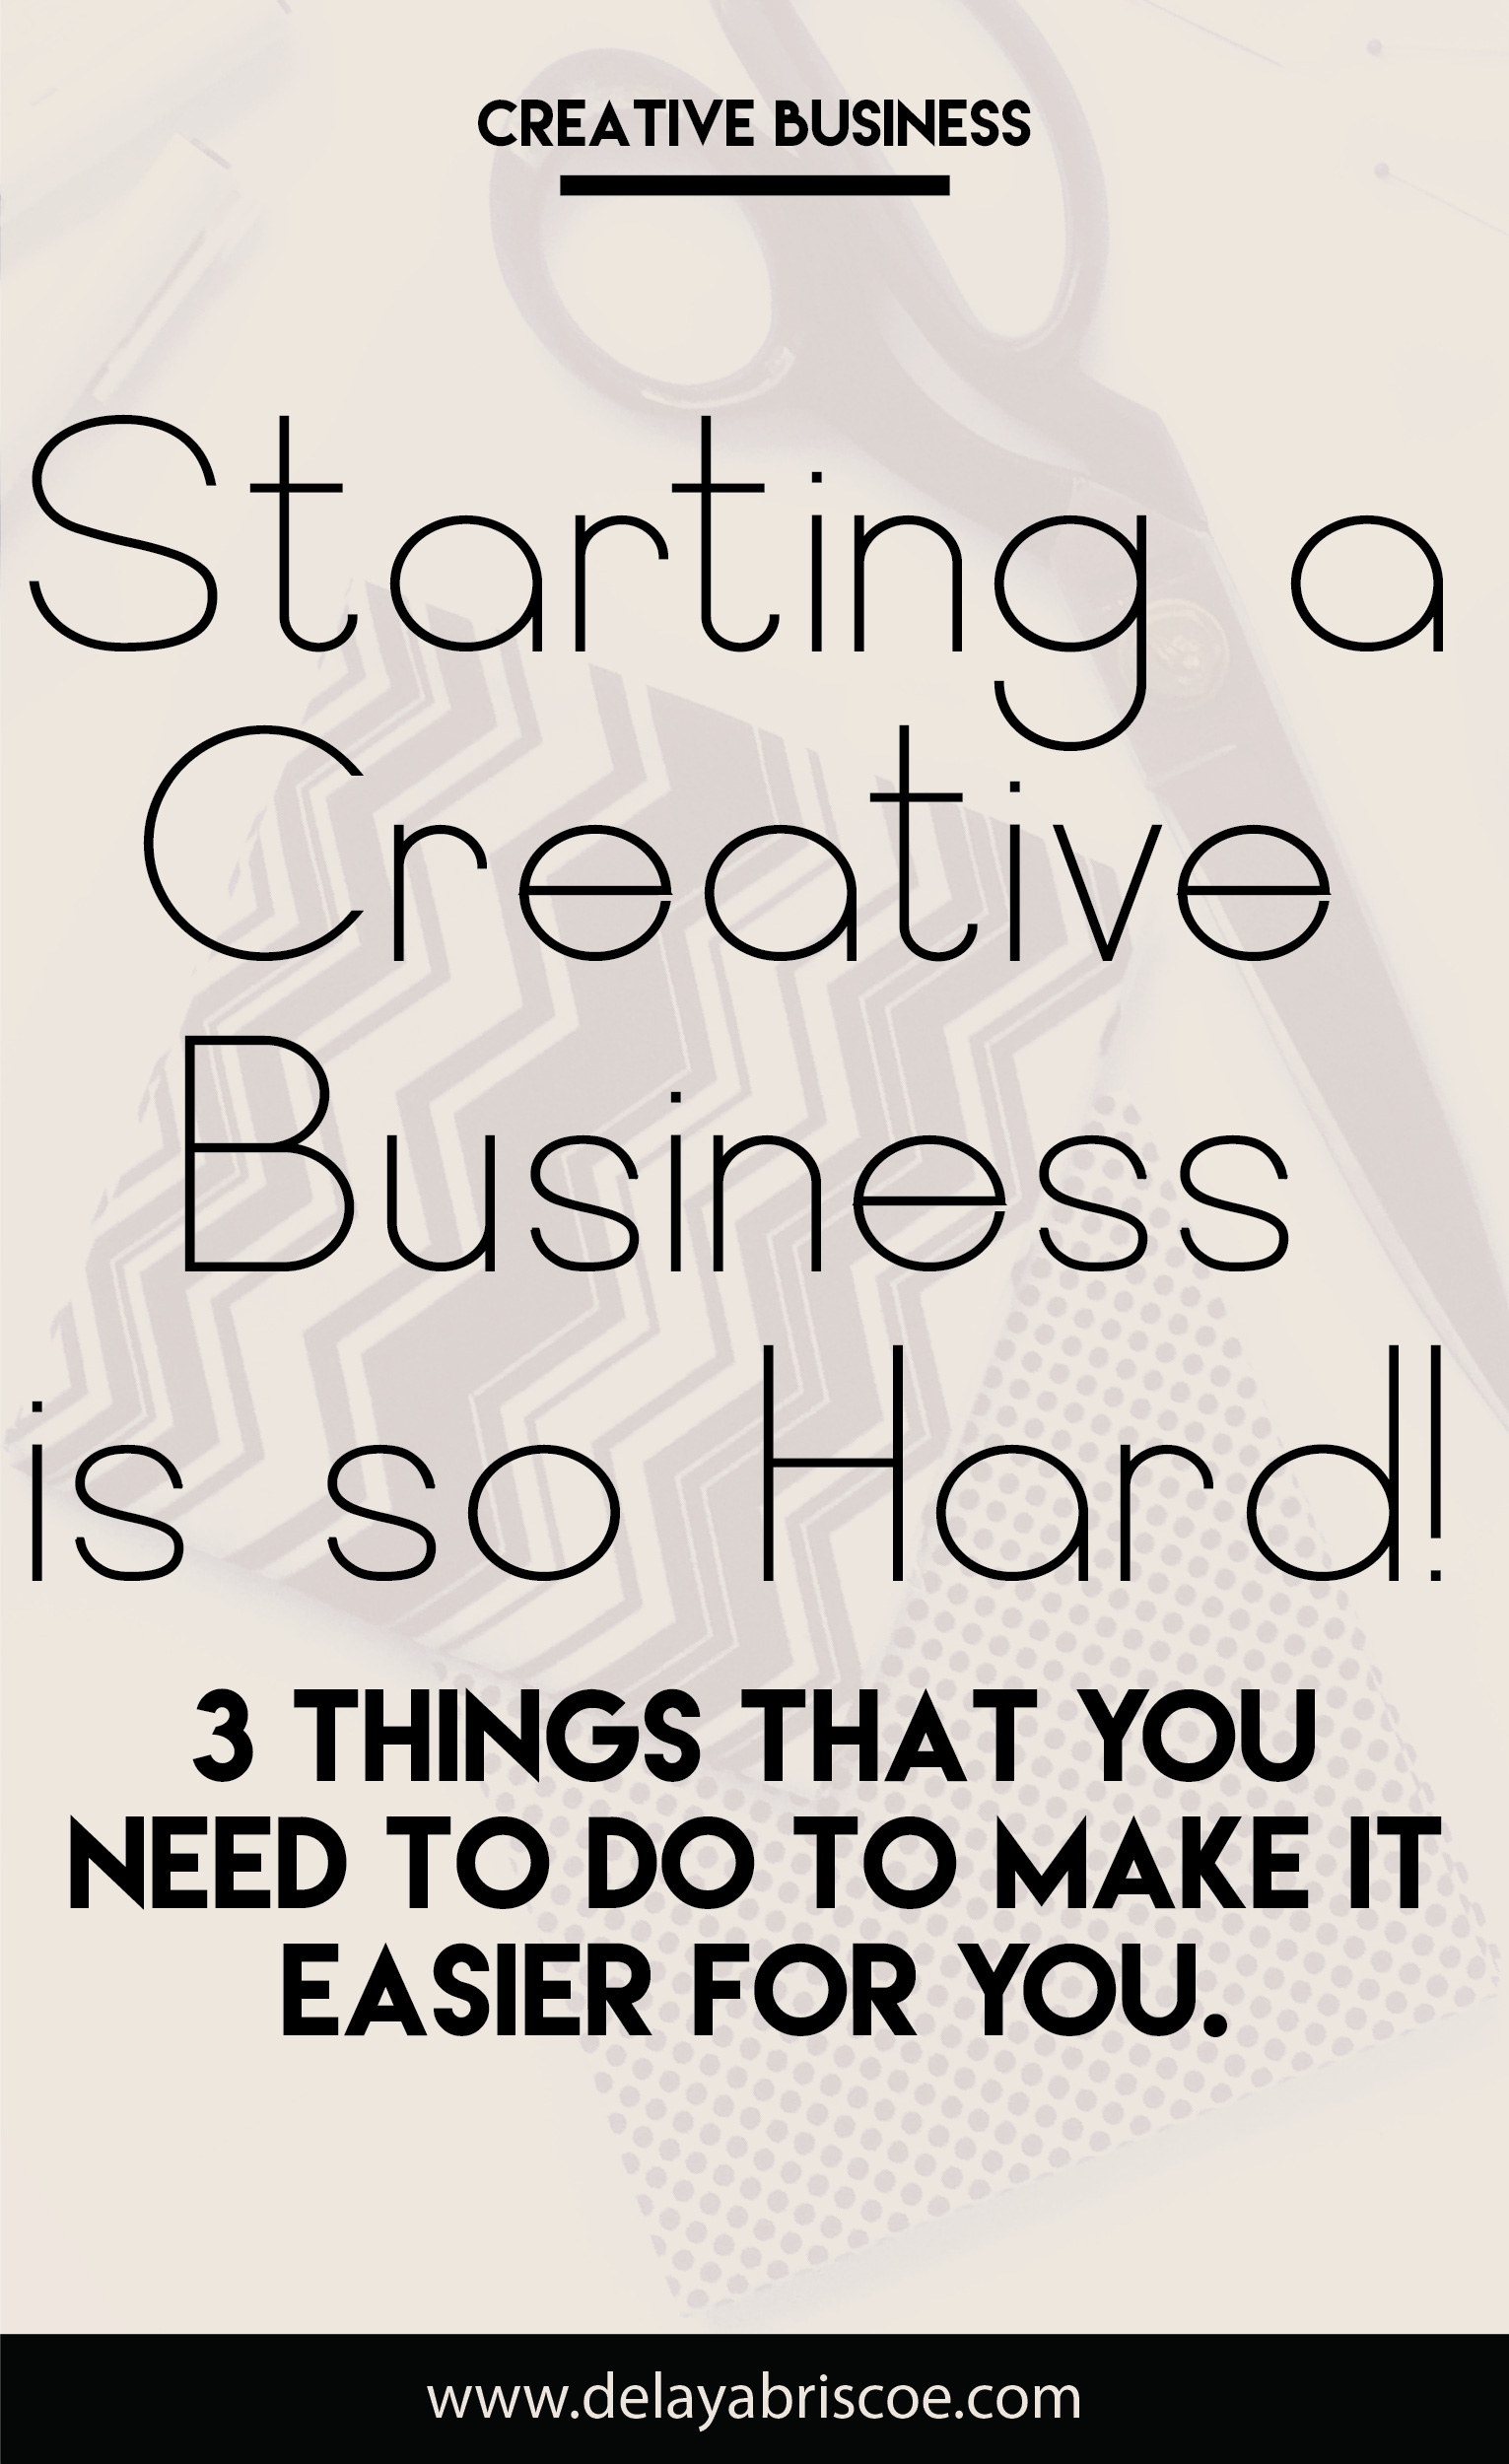 THINGS-NEED-START-PRODUCT-BASED-CREATIVE-BUSINESS